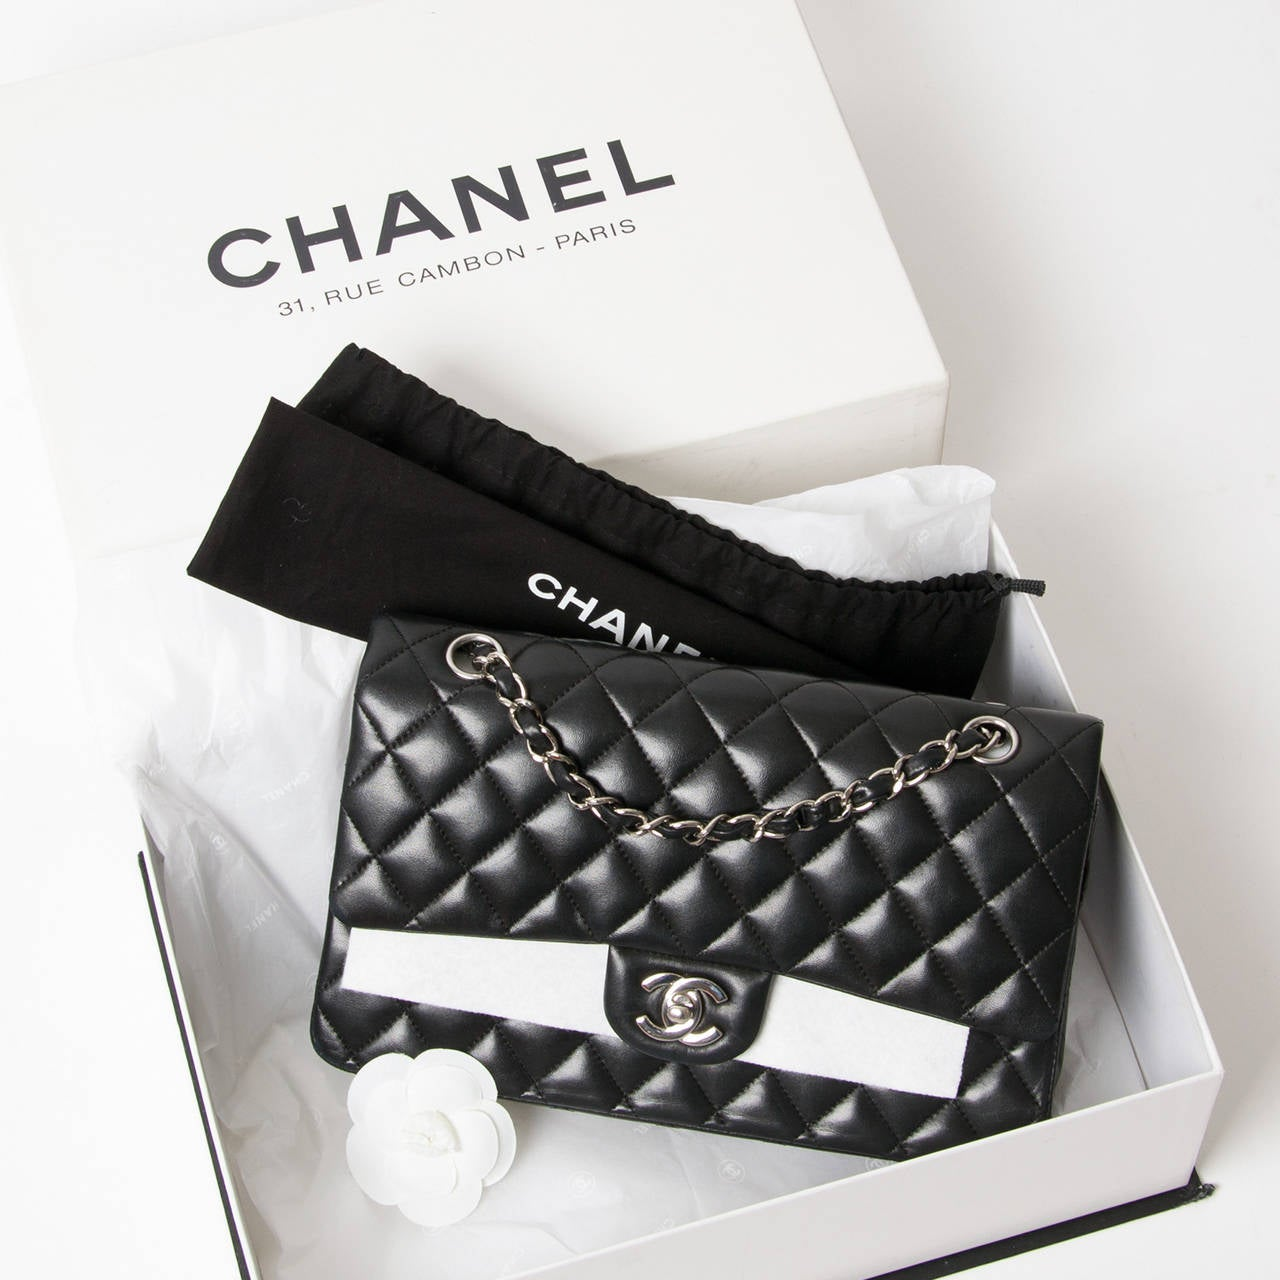 Chanel Black Lambskin Medium Classic Flap Bag This Iconic Is Considered To Be One Of